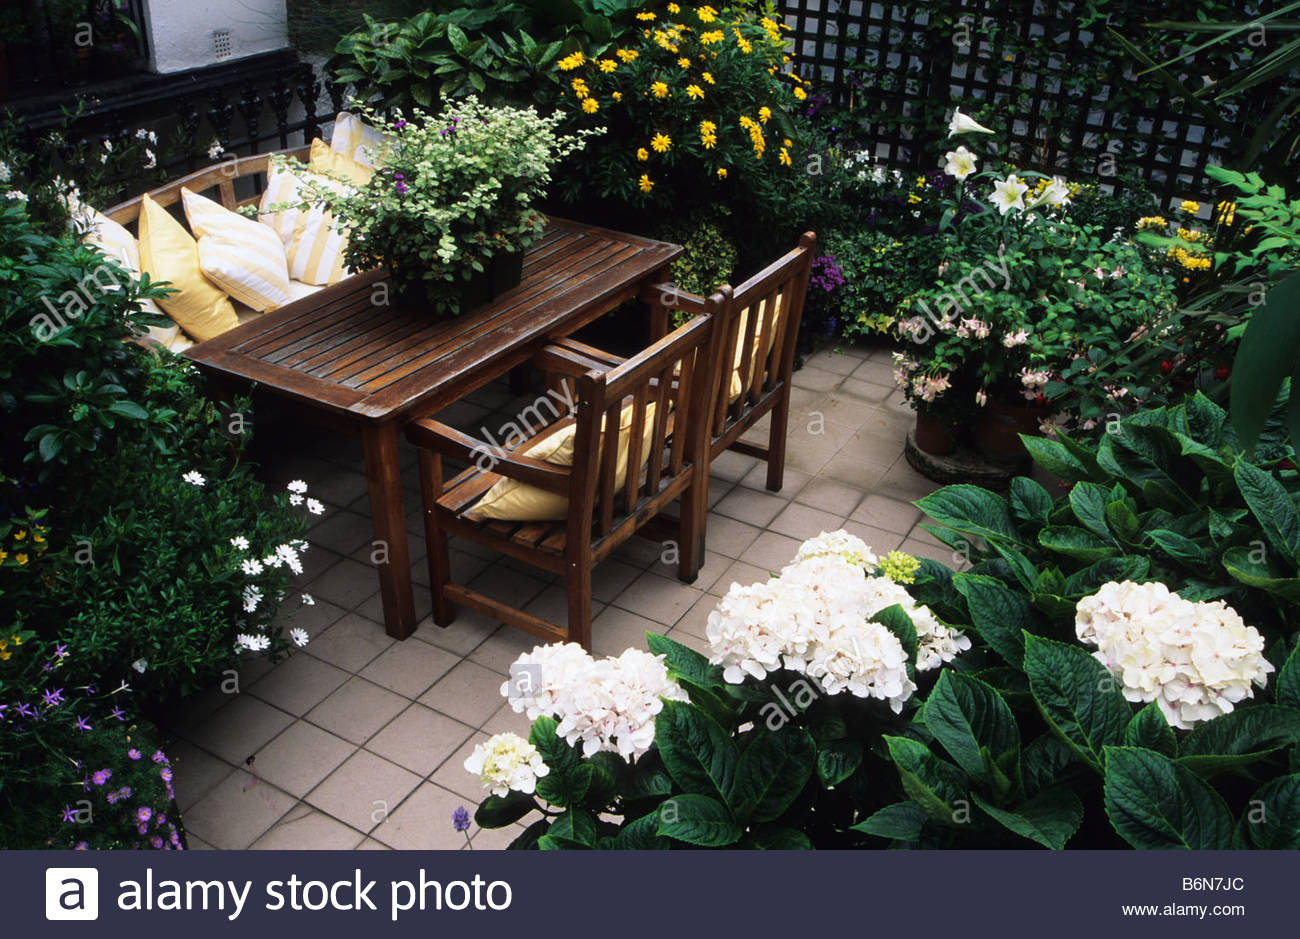 Plants for rooftop gardens - Stock Photo Roof Garden London Hydrangea Macrophylla Shrubs And Plants In Containers Table Chairs Trellis